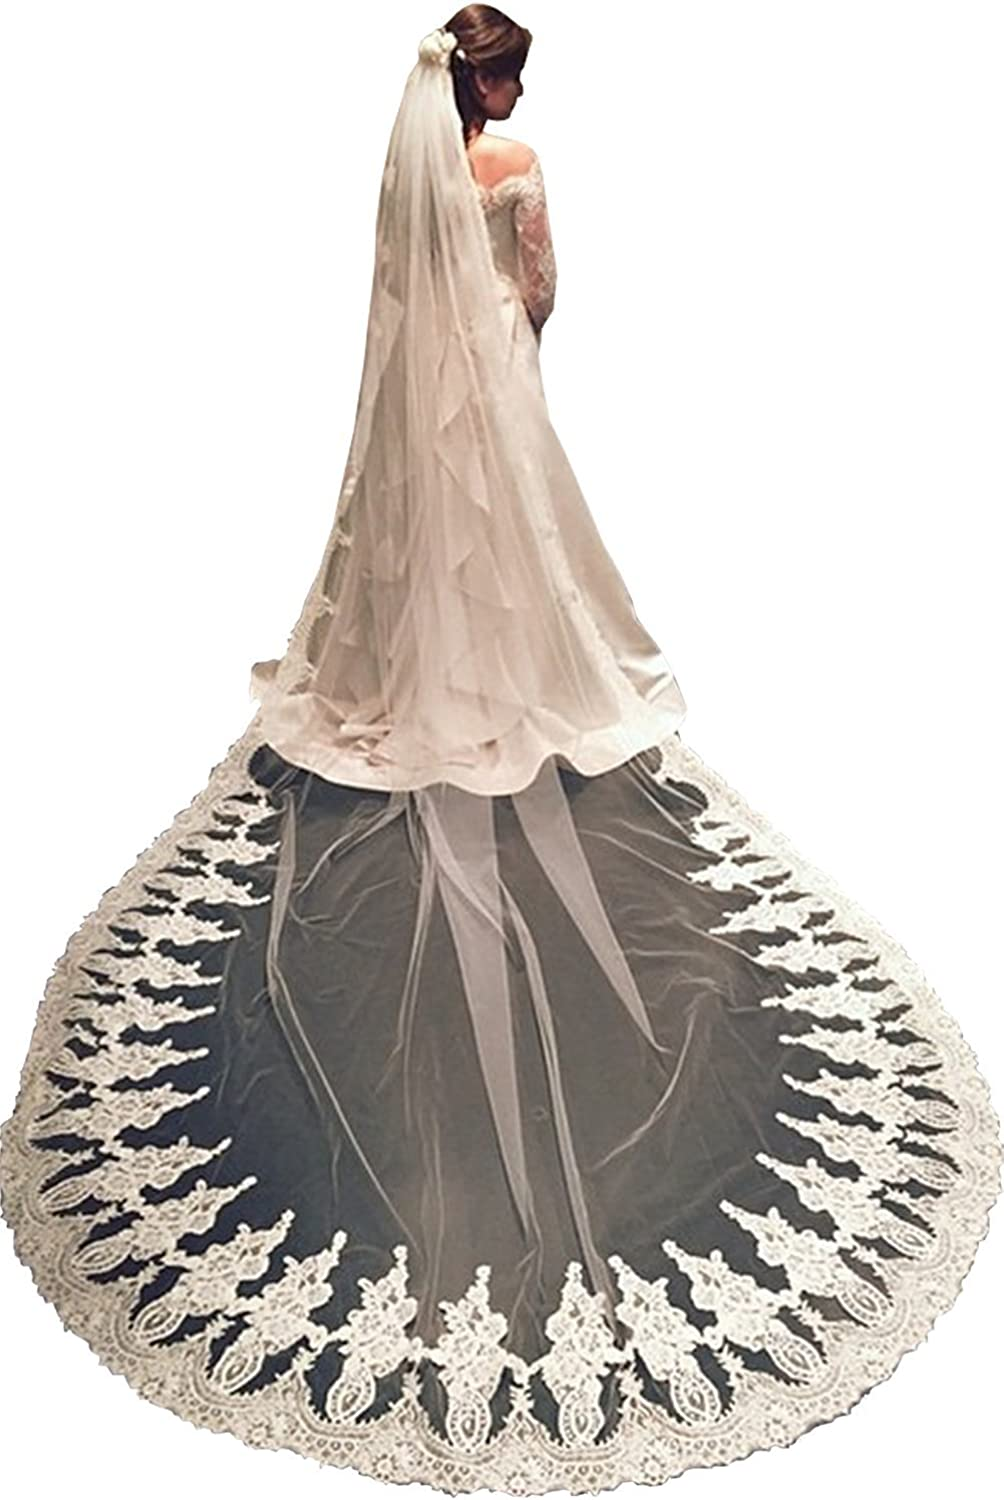 EllieHouse Women's Lace Chapel Wedding Bridal Veil With Free Comb E10